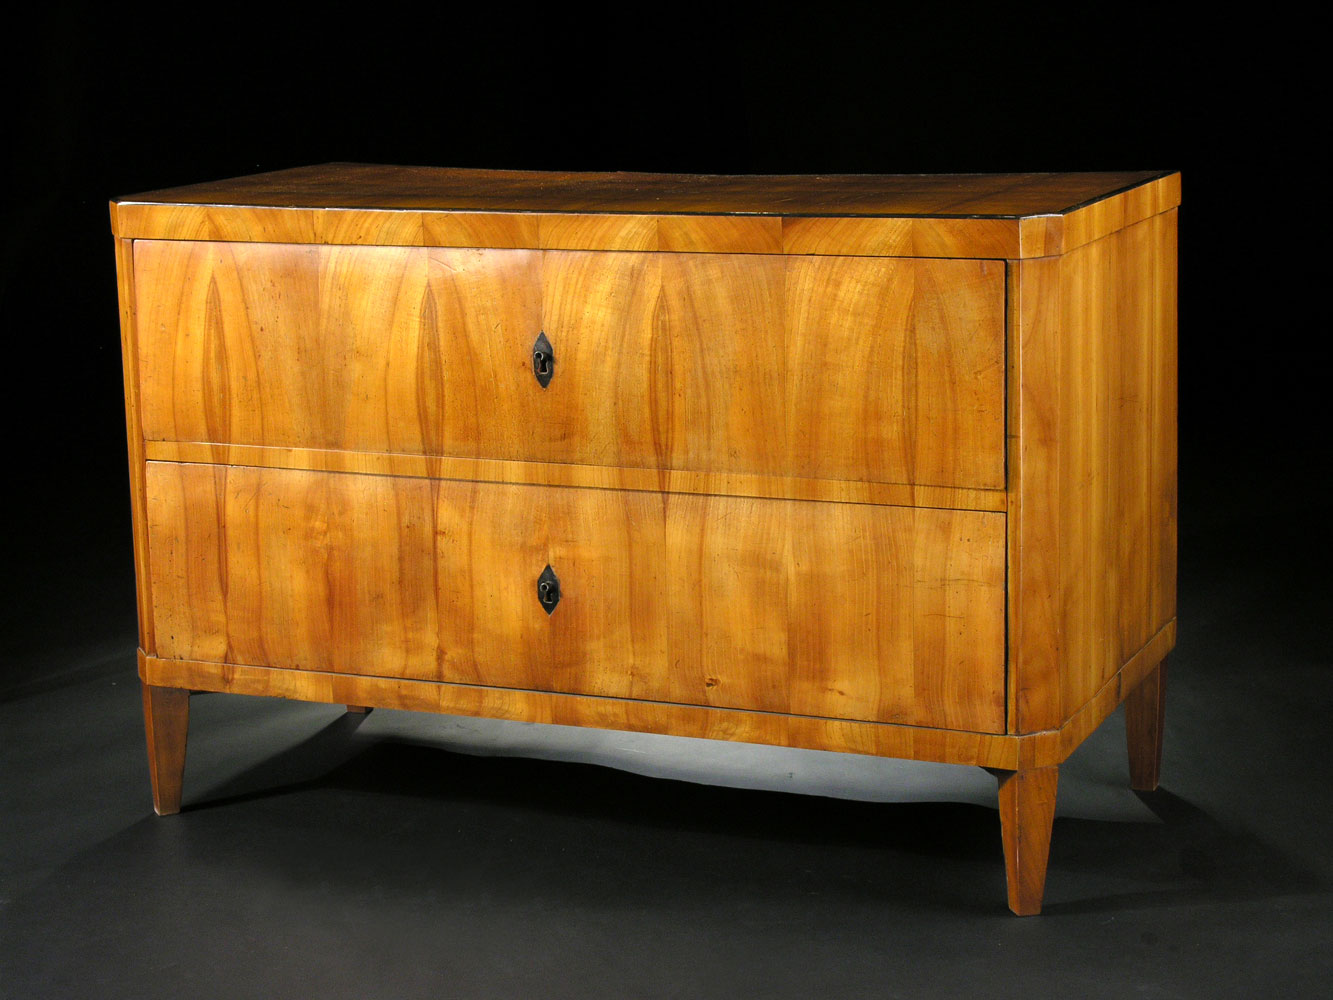 Biedermeier Kommode Münchener Biedermeier Kommode Hampel Fine Art Auctions